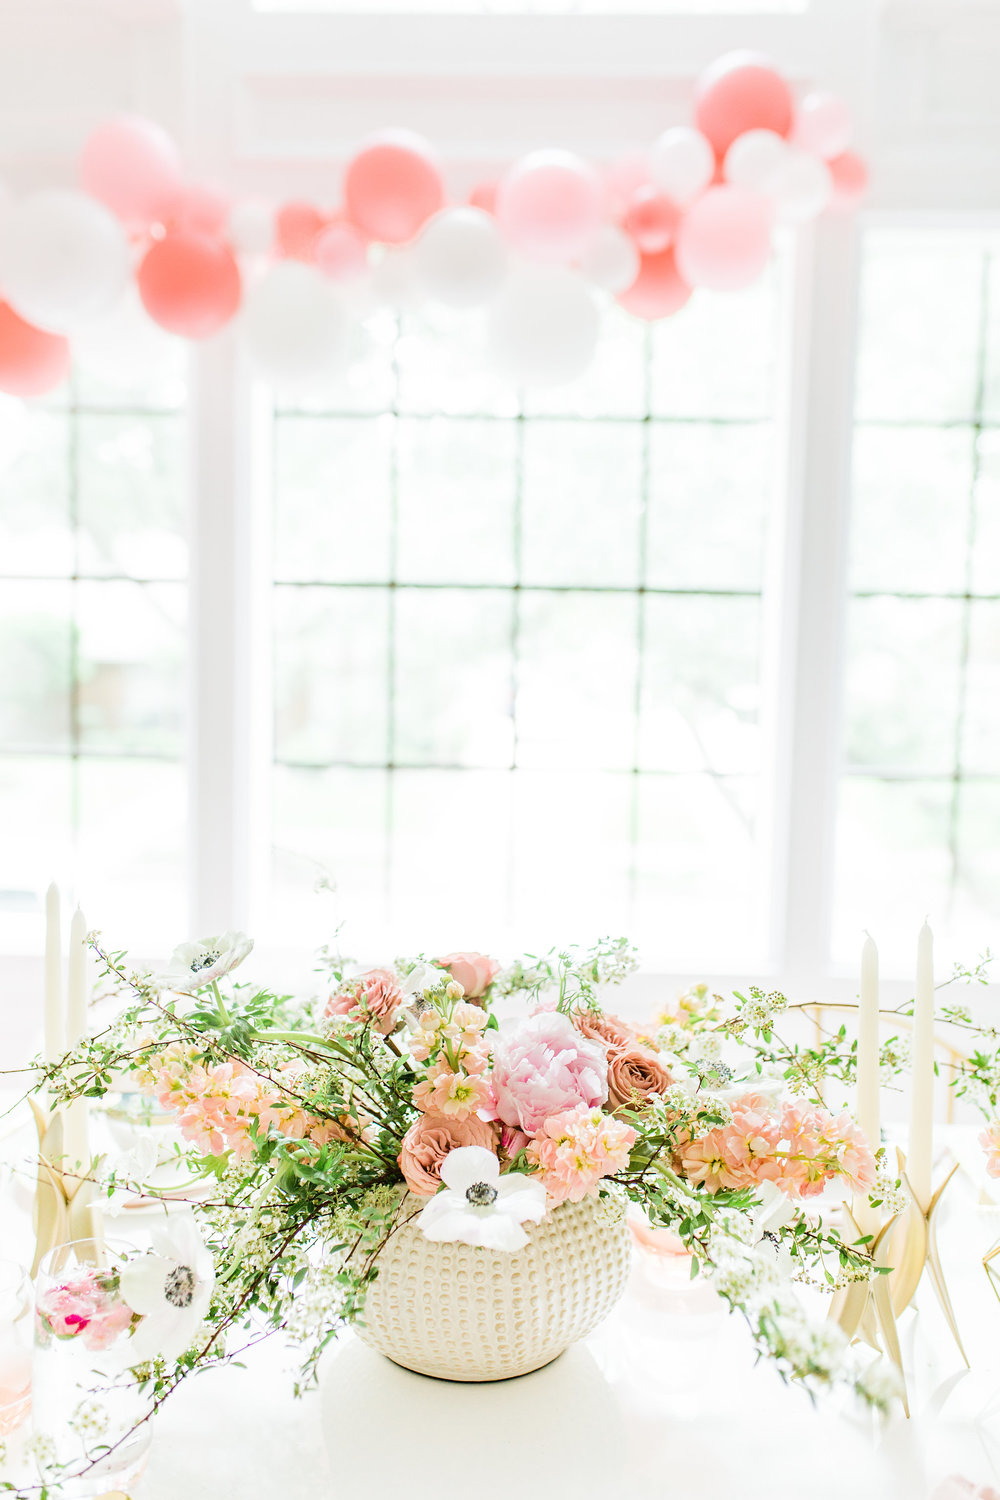 Olivia and Oliver Gold, Blush and Greenry Plants Gilded Garden Styled Bridal Shower Brunch with Bed Bath Beyond organic flower bouquet blush and gold bridal shower Joyfullygreen.jpg